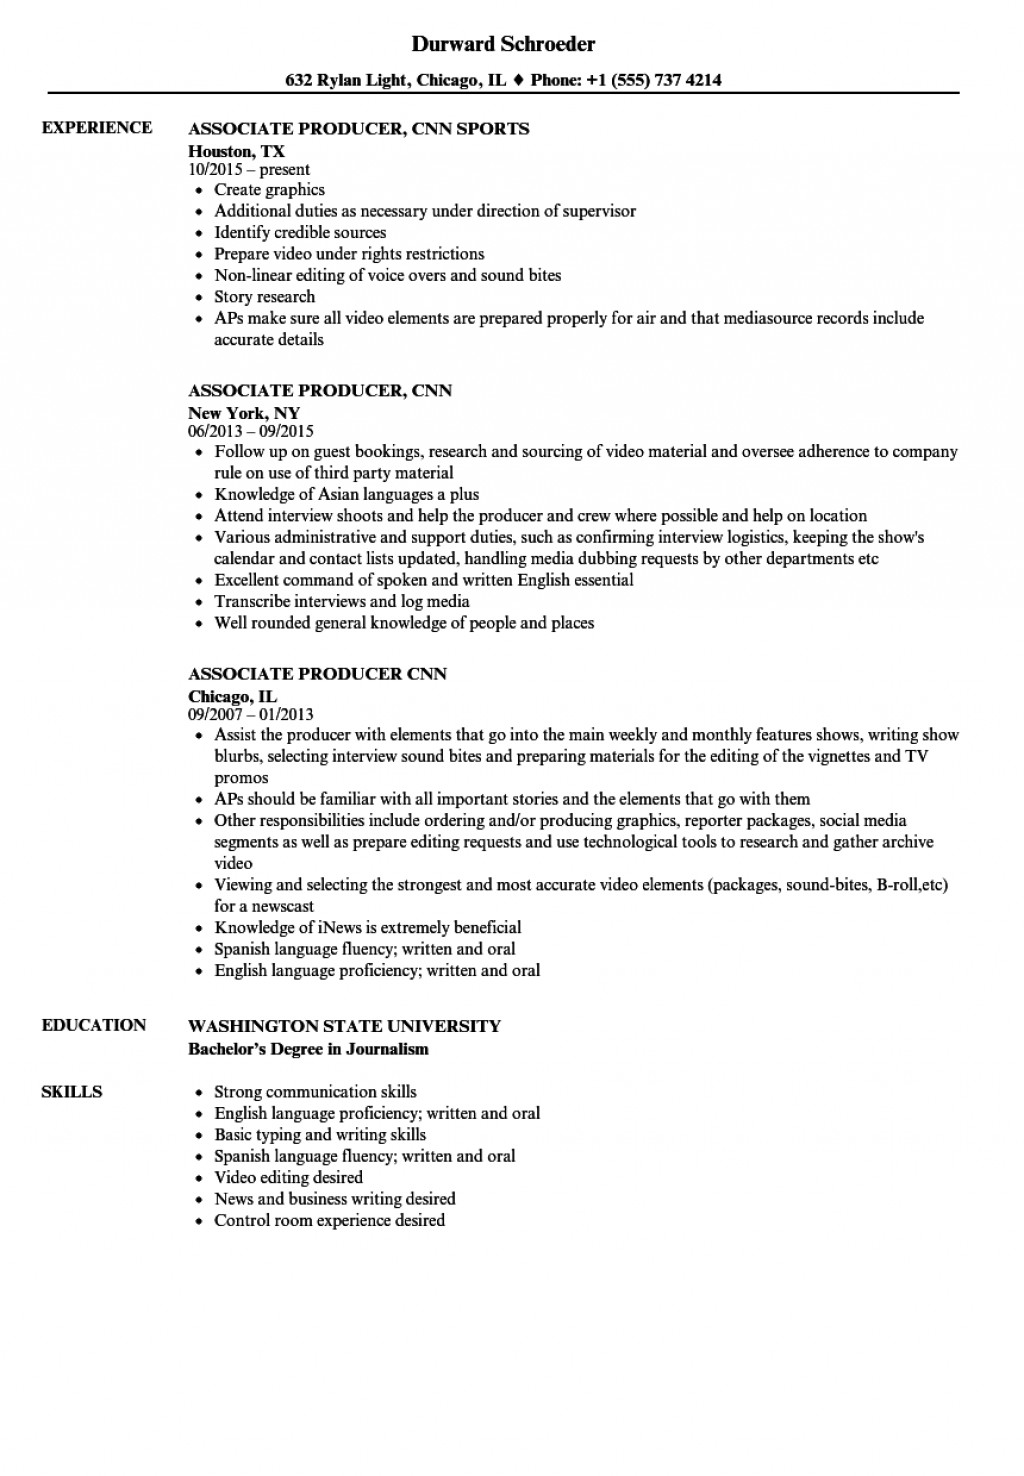 008 Research Paper Associate Producer Cnn Resume Sample Is Credible Source Staggering A For Large